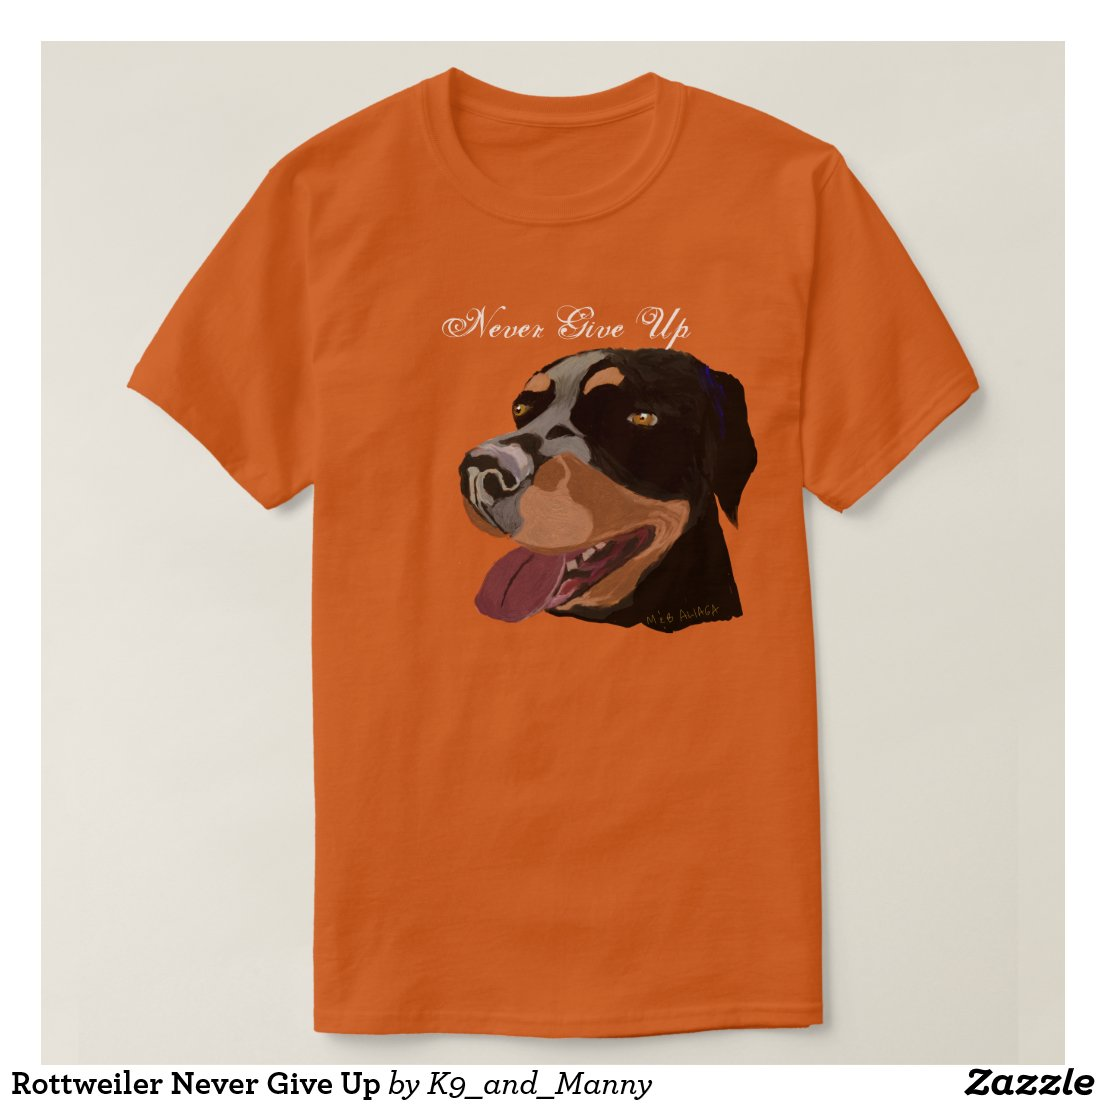 Rottweiler Never Give Up T-Shirt